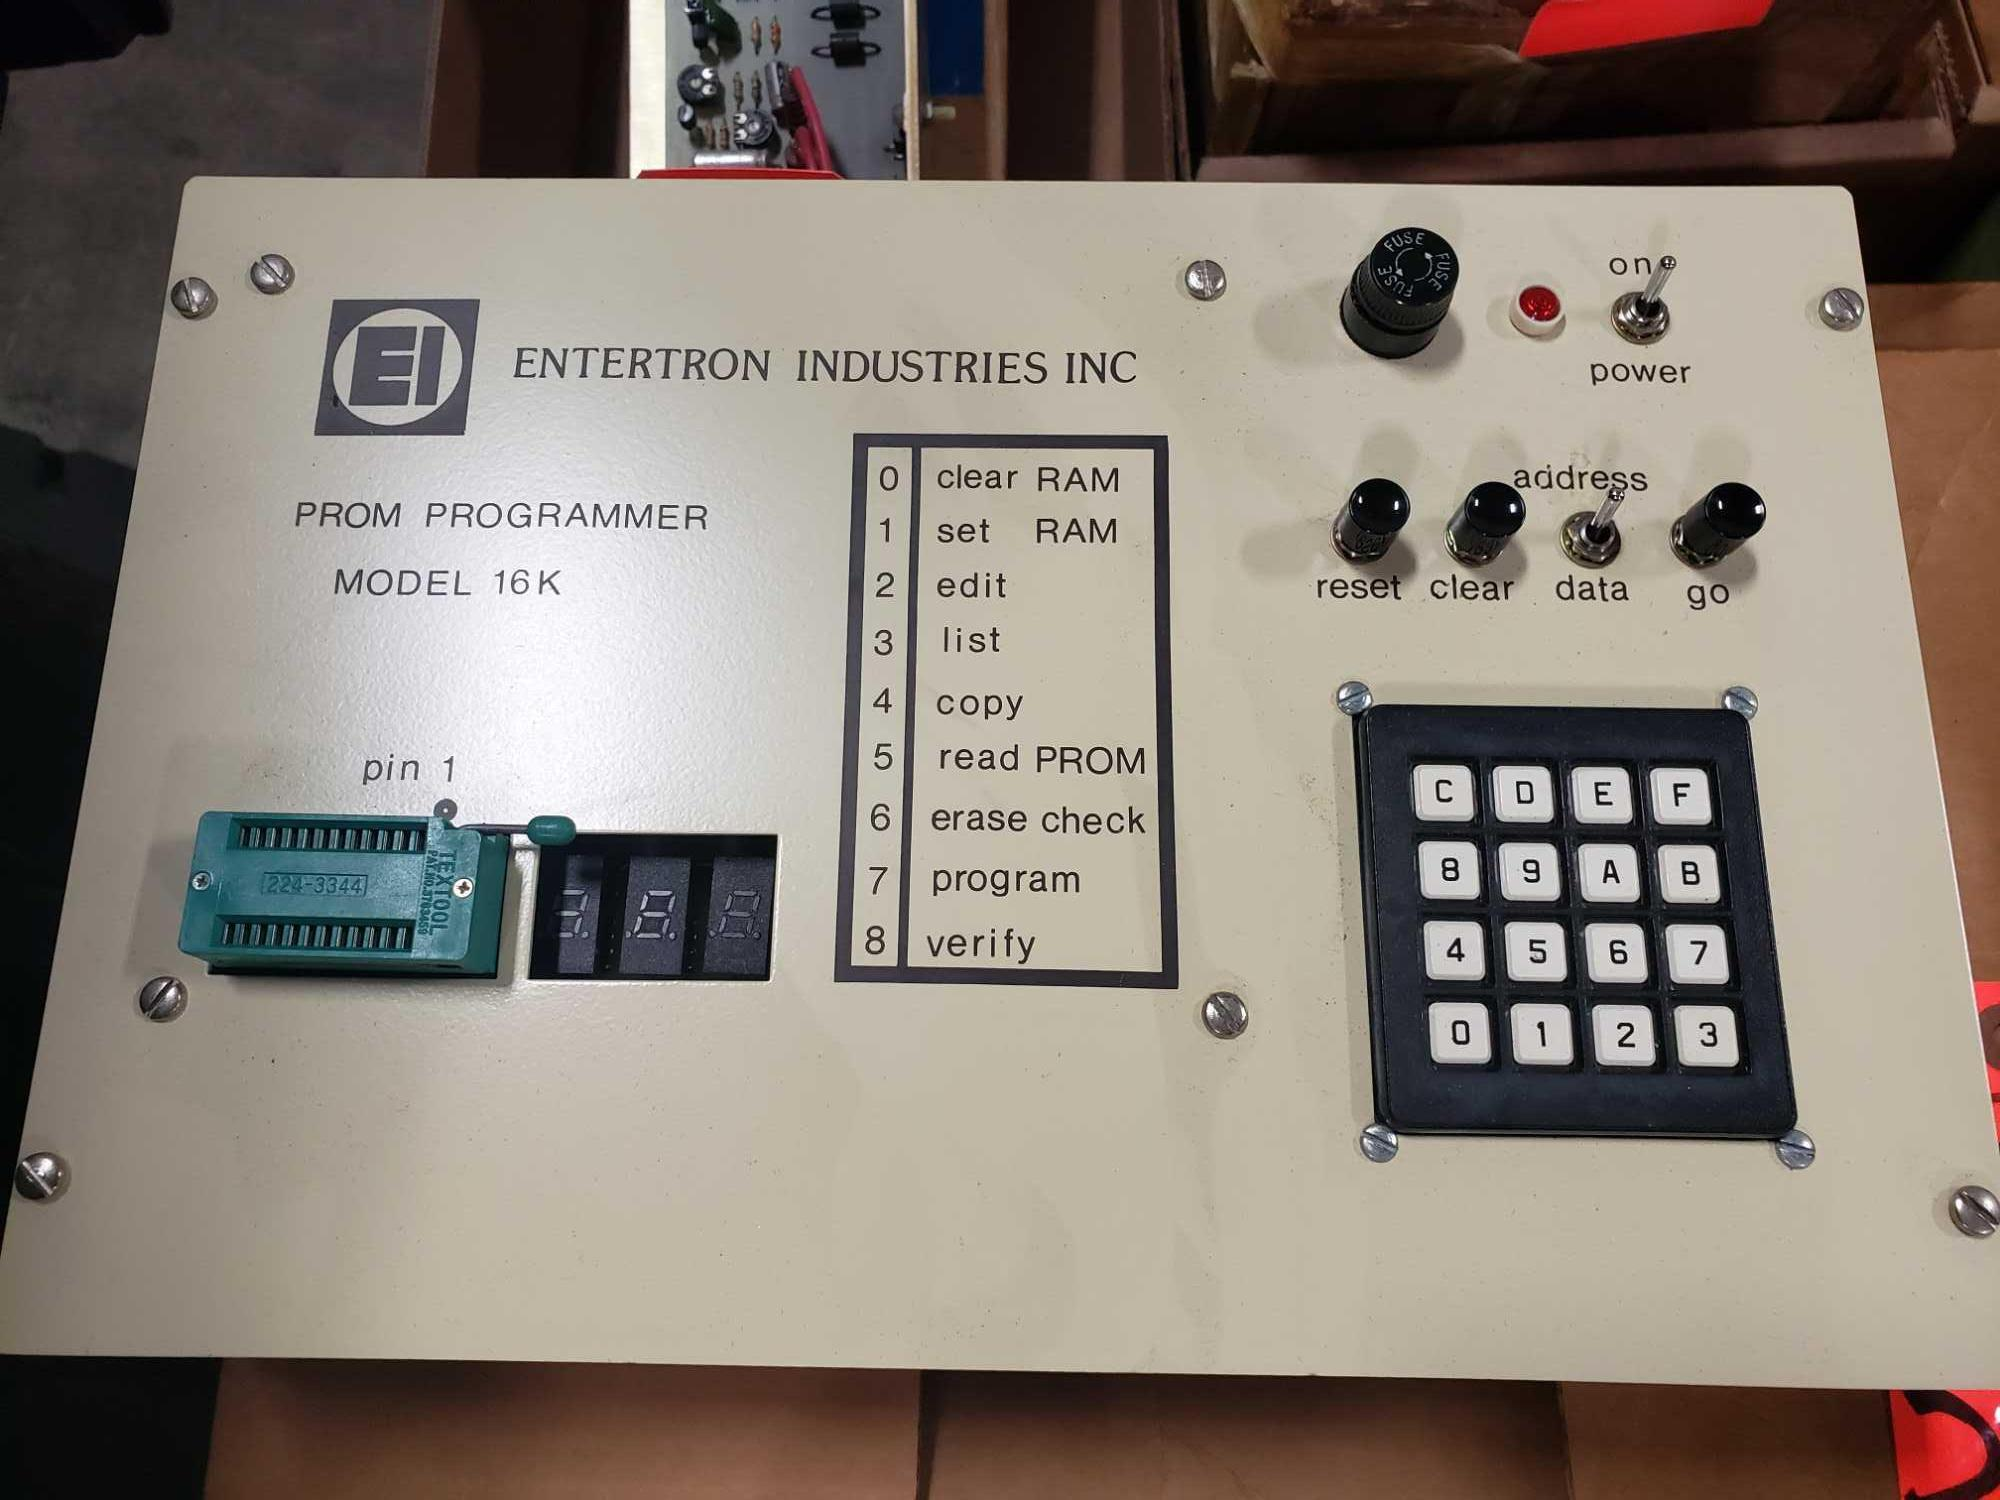 Entertron Industries Prom Programmer model 16K. New in box. - Image 2 of 3